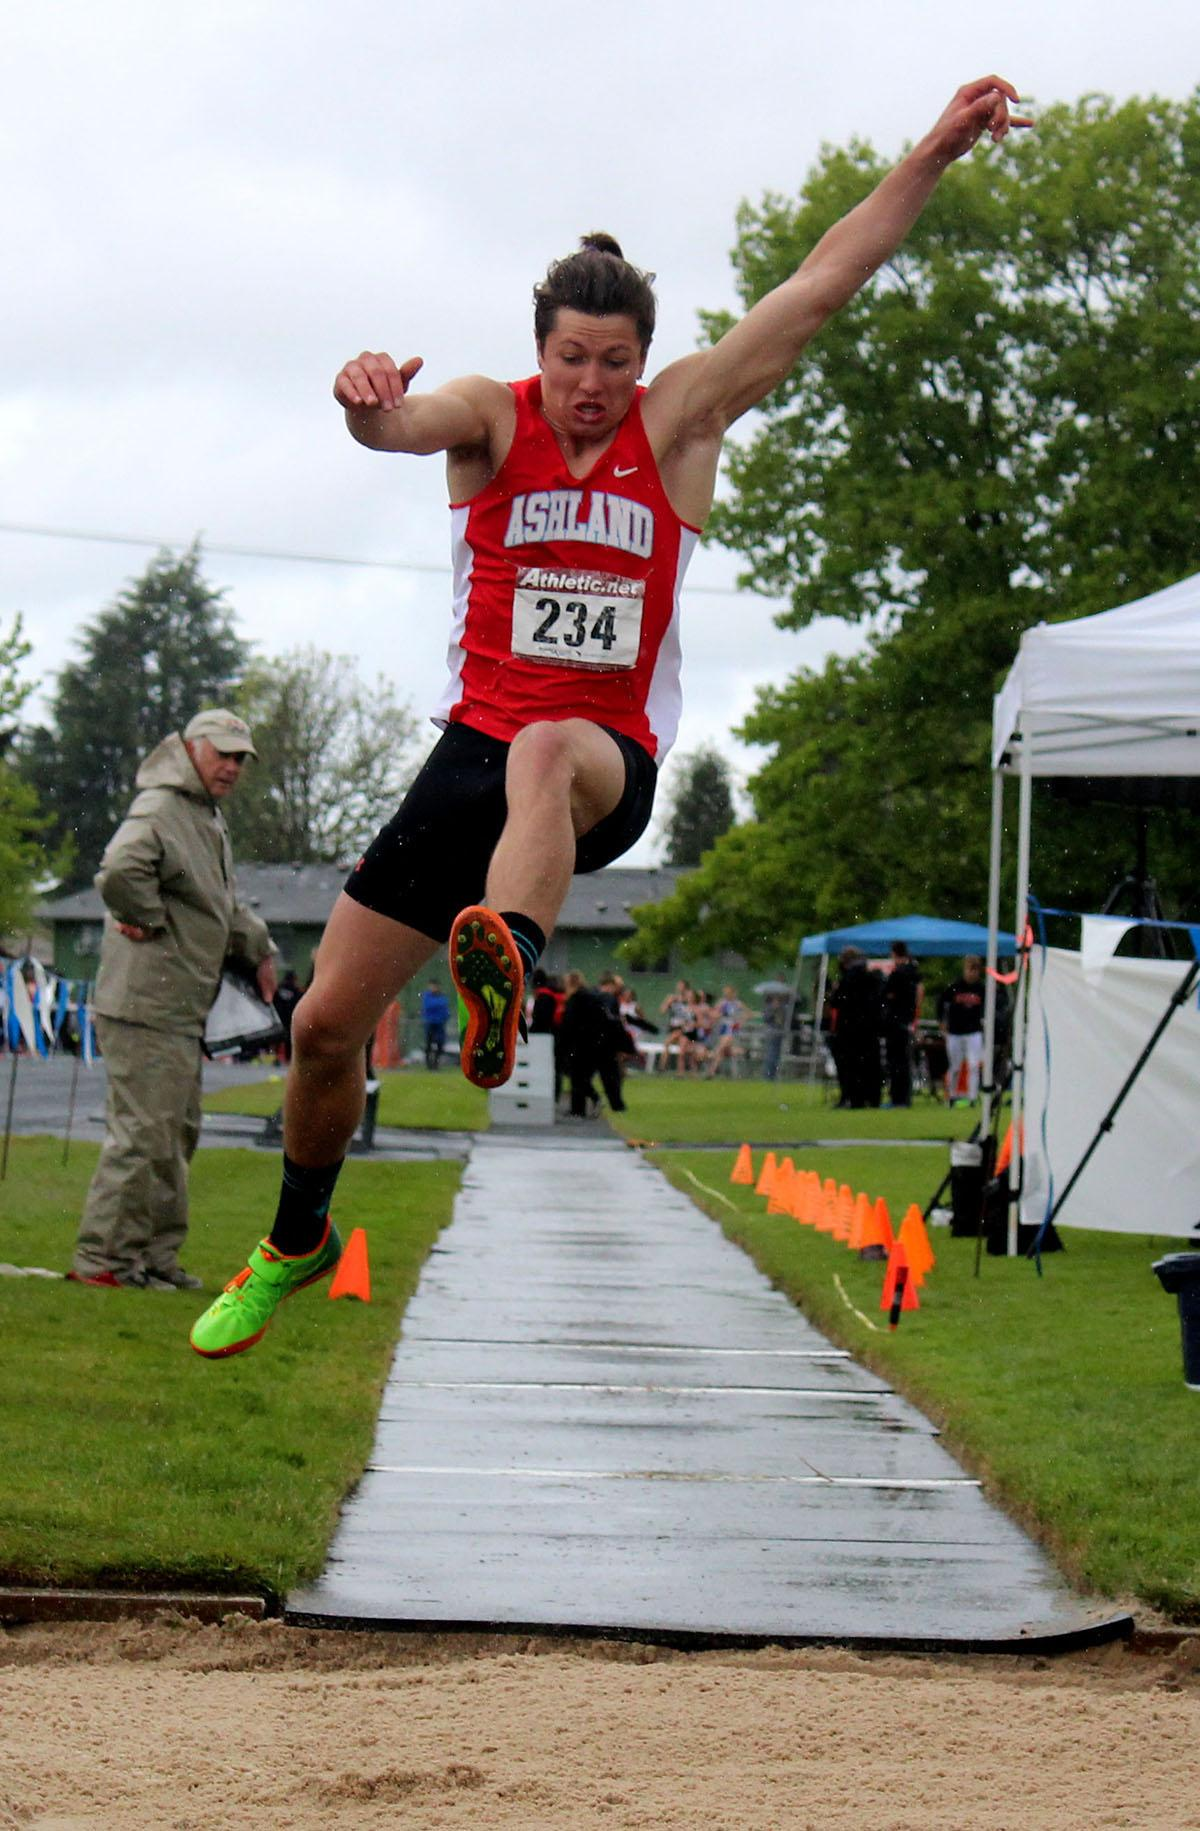 A triple jumper gives it his all at the 5A-3 Midwestern League District Track Championship meet. Photo by Elle Page, Oregon News Lab